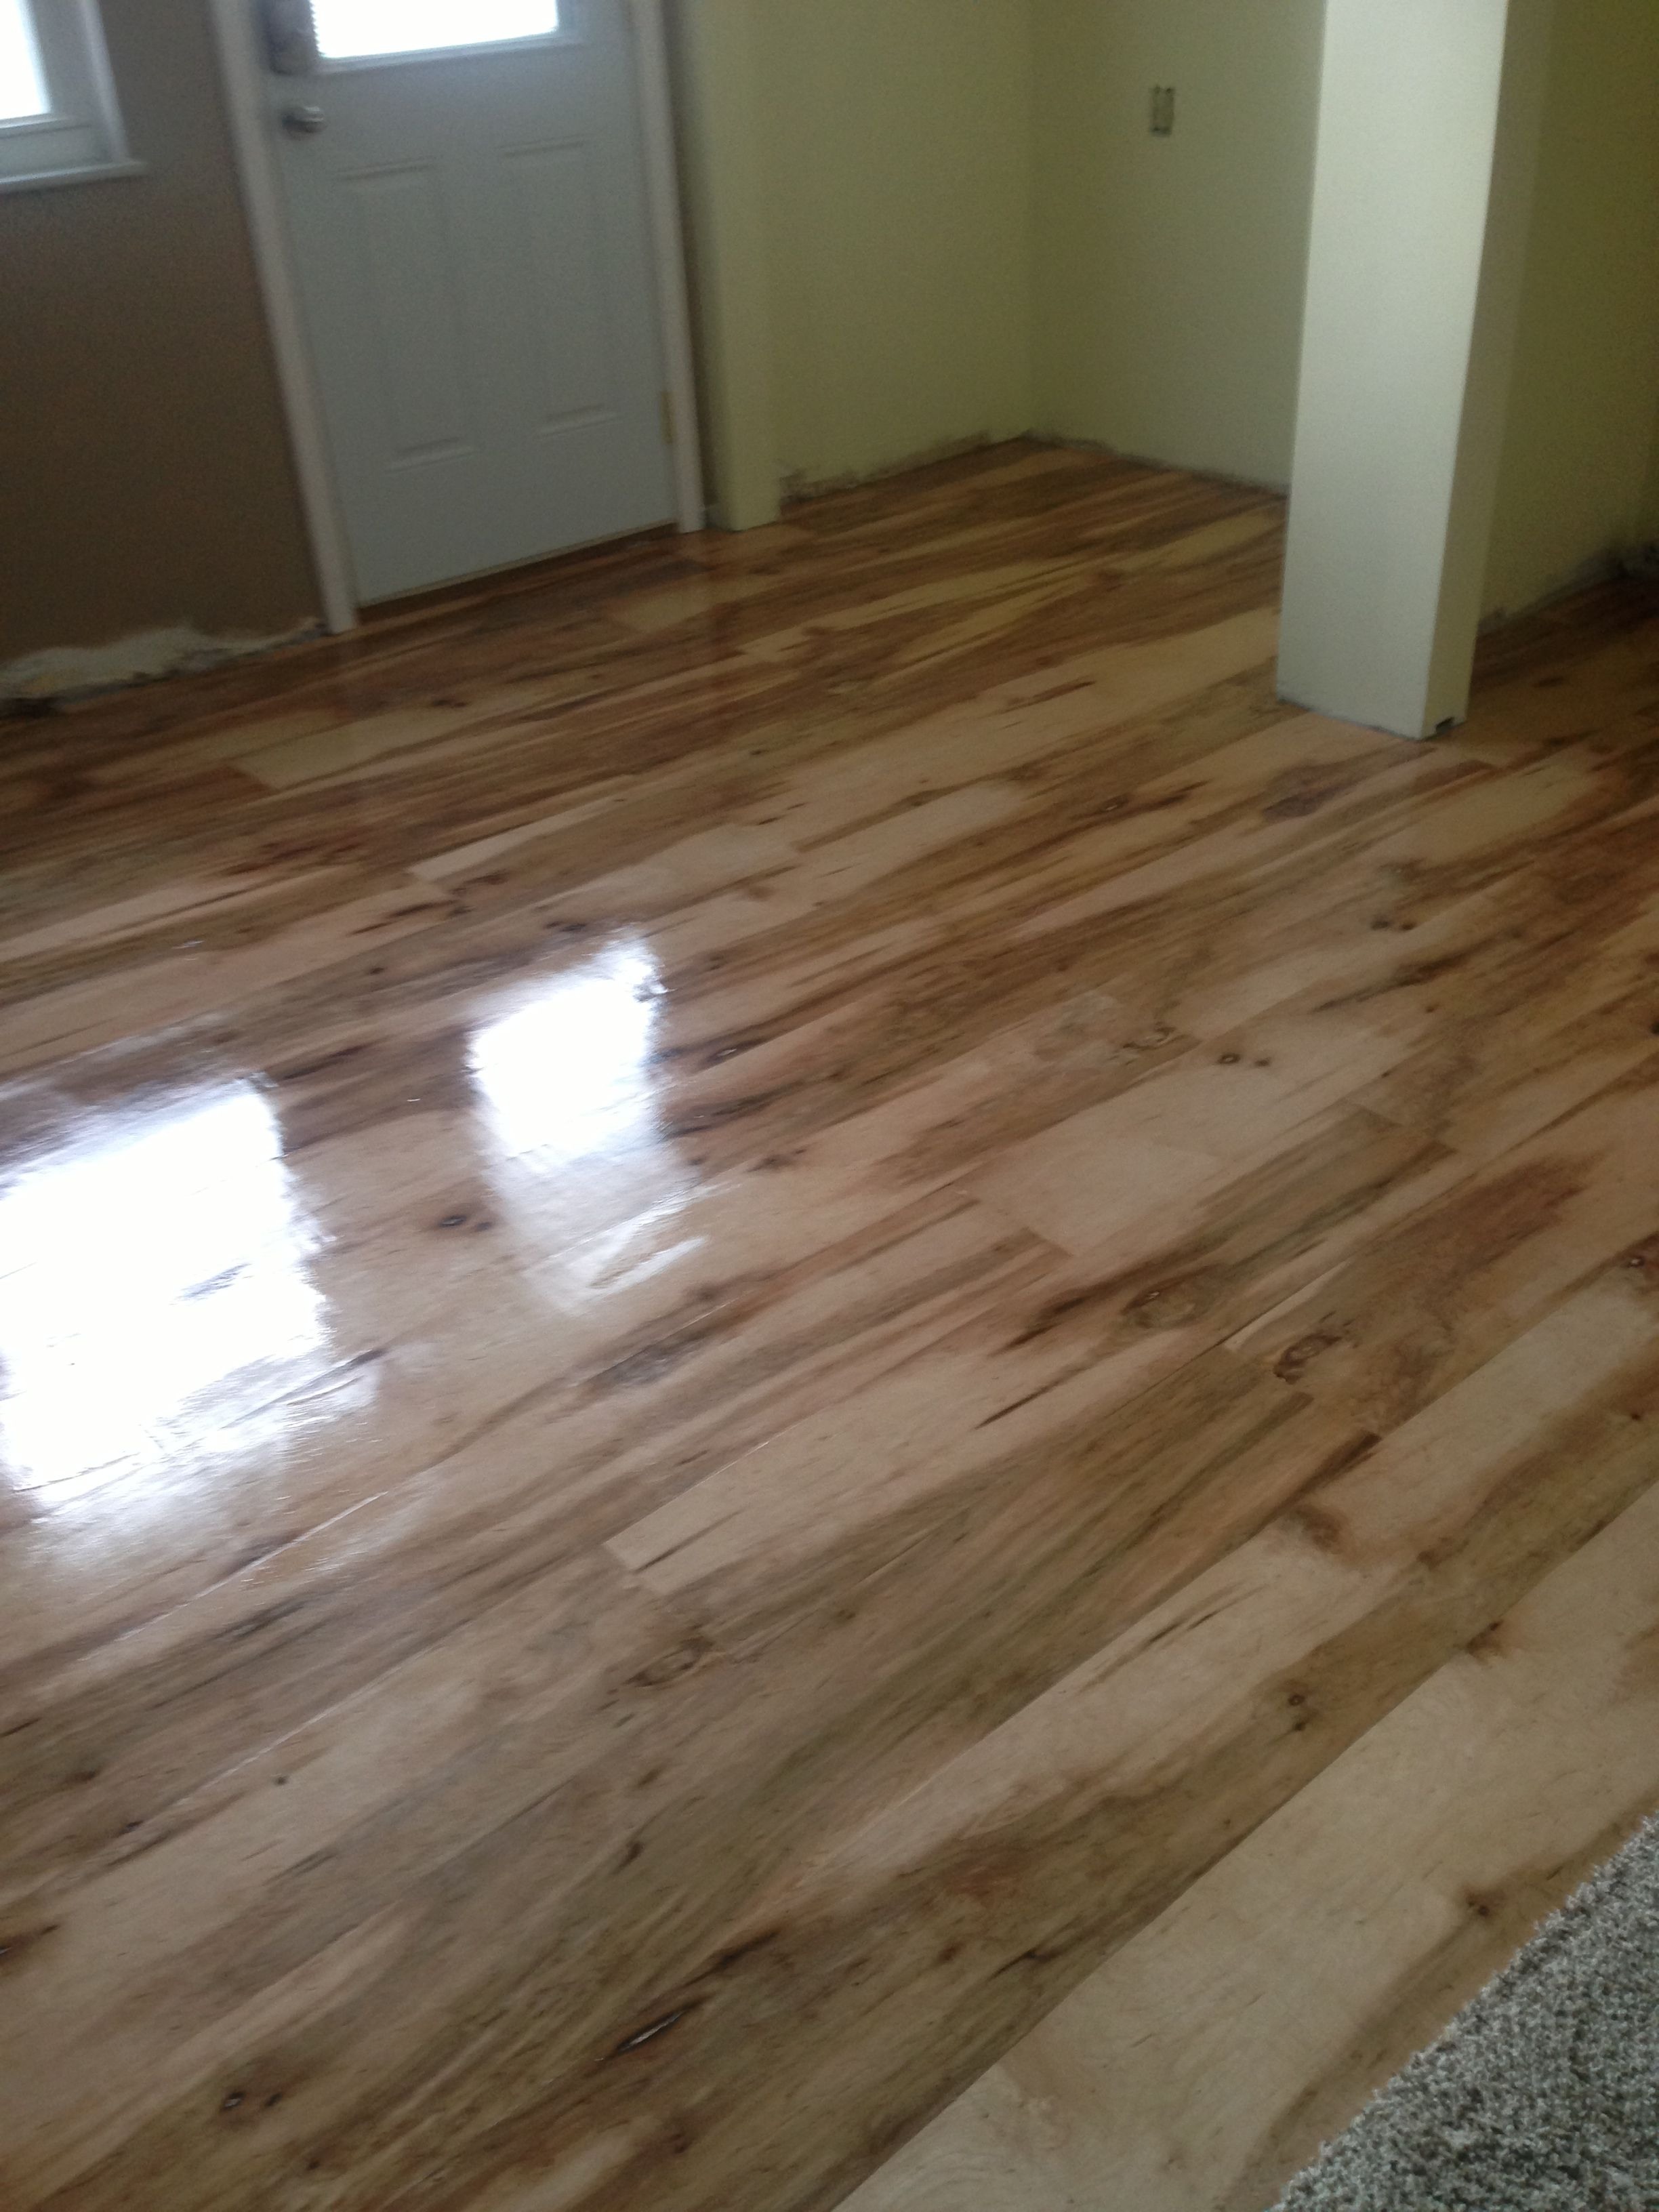 The Final Finish Of The Plywood Floor Love Only Cost 100 00 Dollars Total Diy Flooring Flooring Plywood Flooring